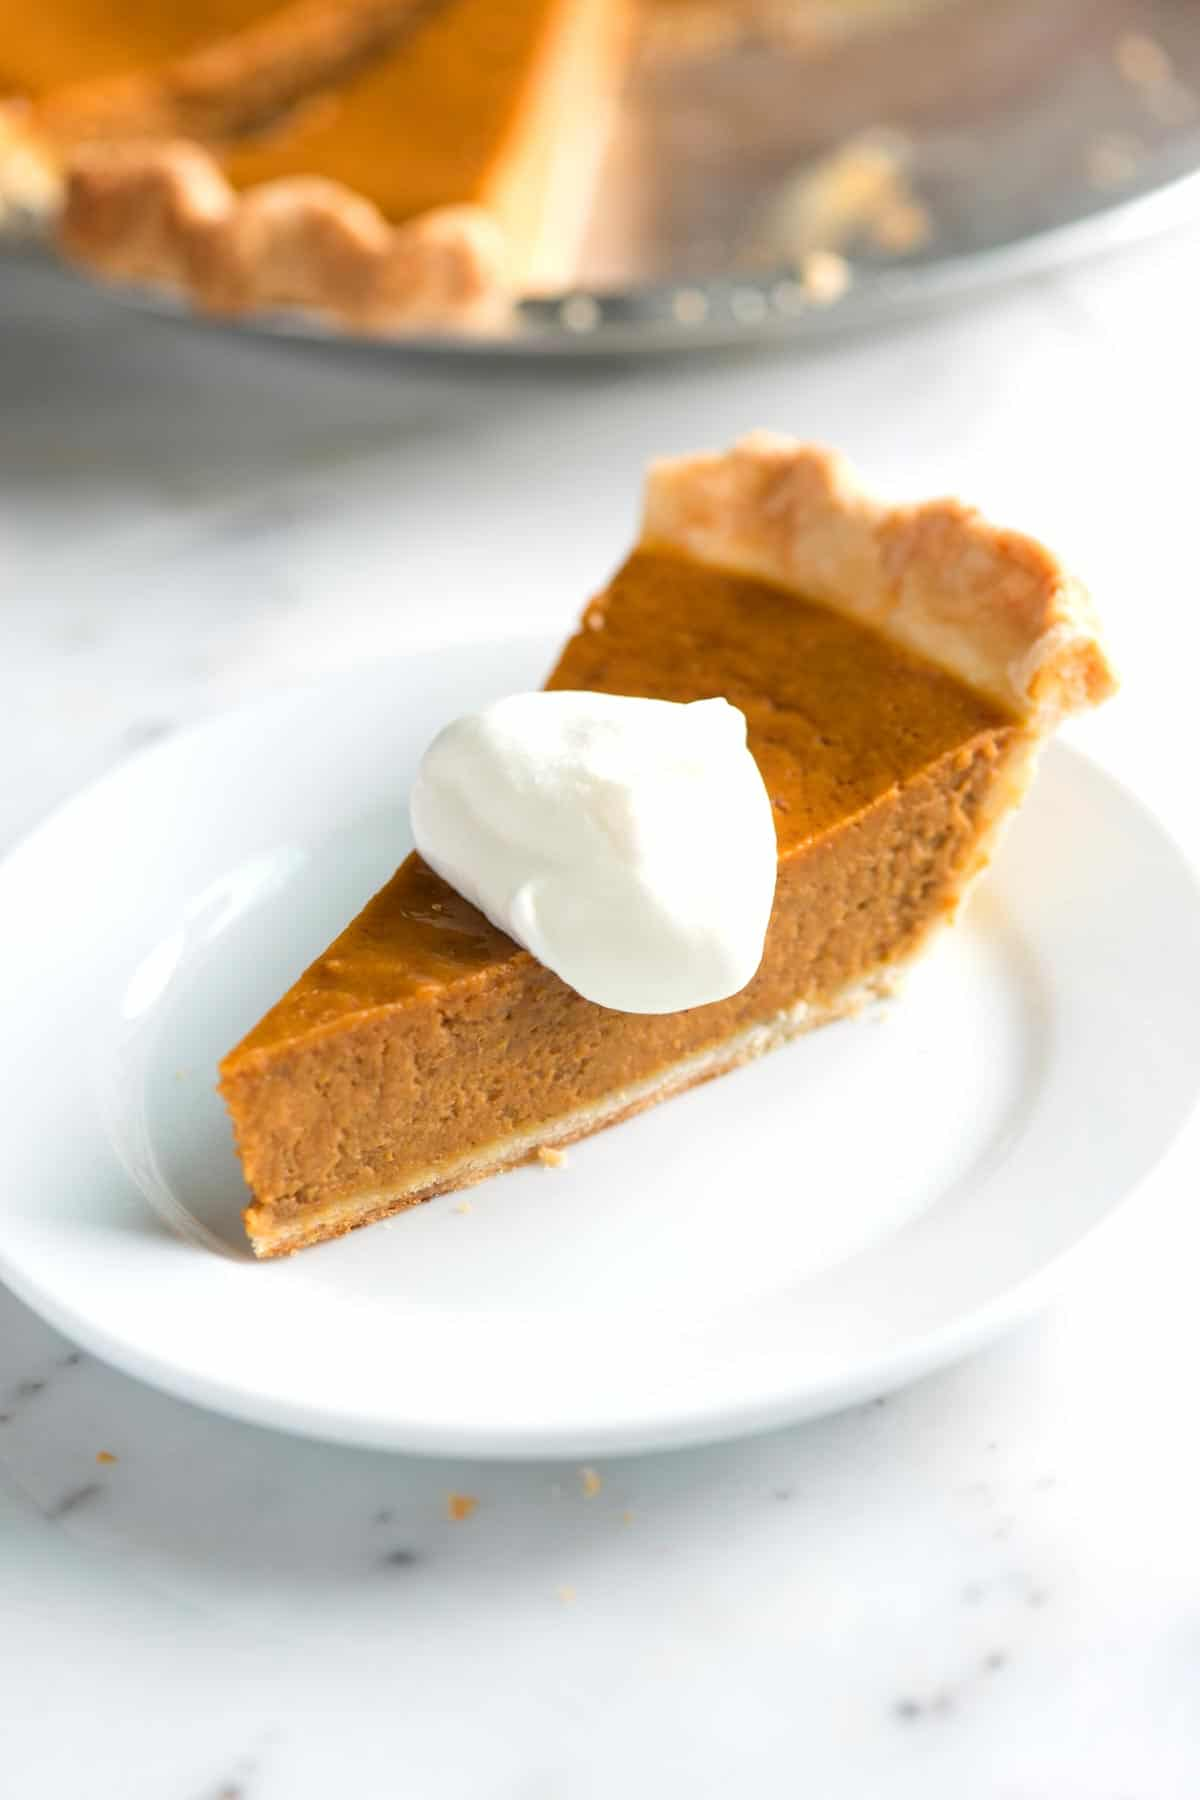 Making this pumpkin pie from scratch is easy -- we actually think it's one of the simplest (and tastiest) pies you can make at home.